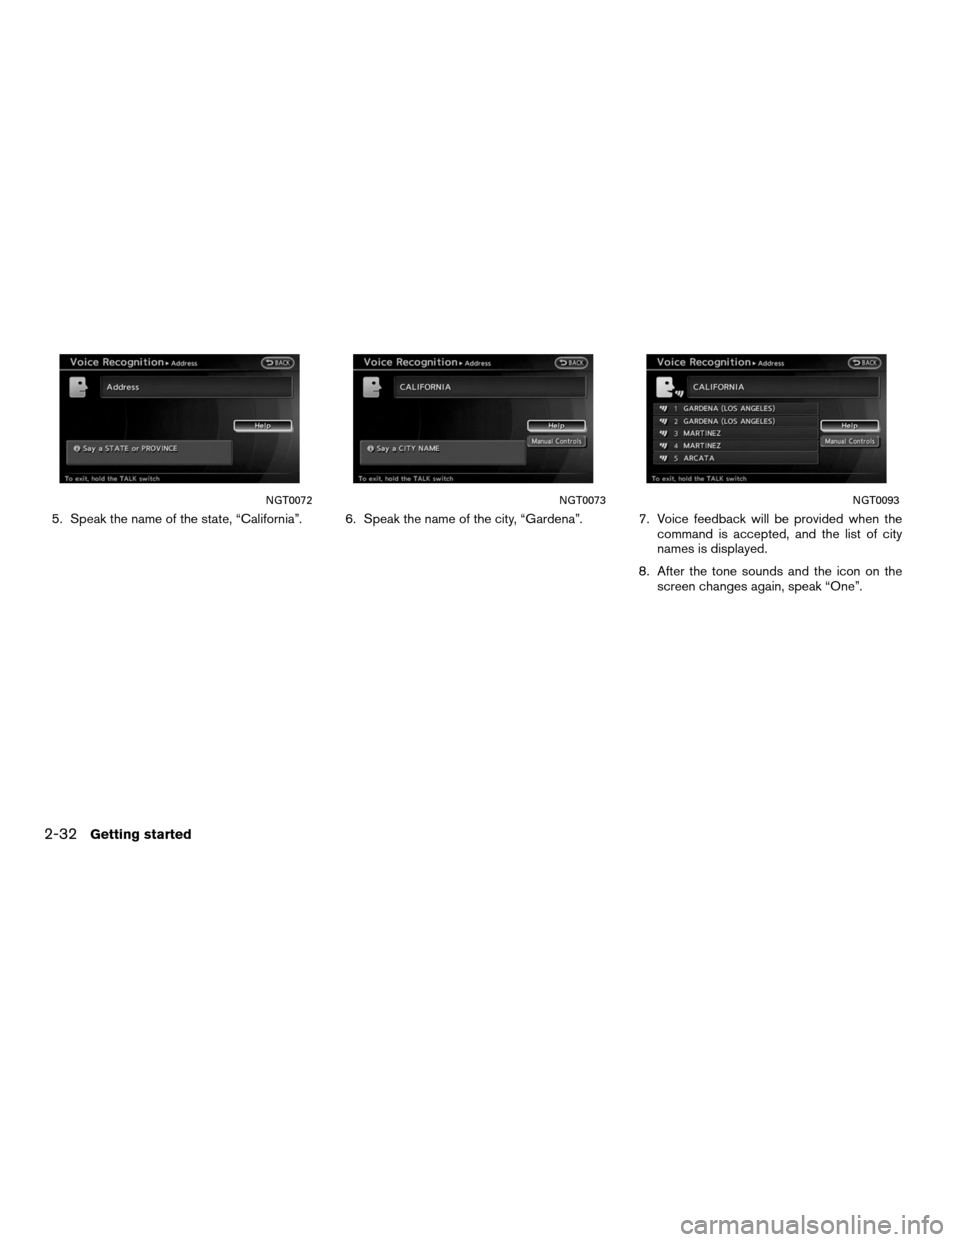 NISSAN ALTIMA COUPE 2011 D32 / 4.G Navigation Manual, Page 40